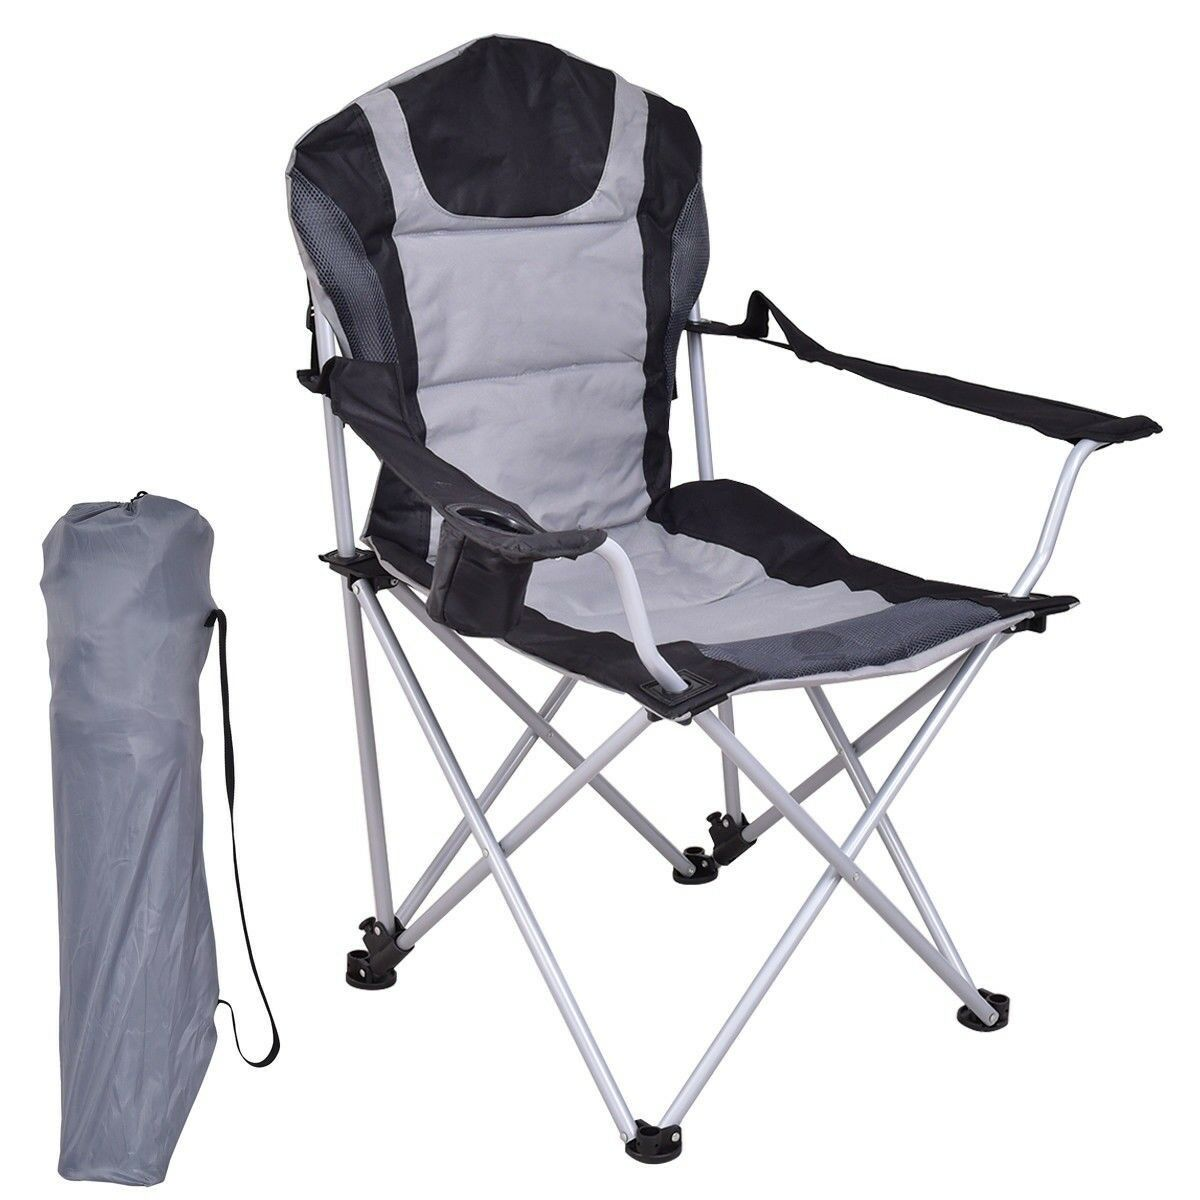 Outdoor Portable Fishing Stable Chair Seat w Cup  Holder Beach Camping Folding  comfortably